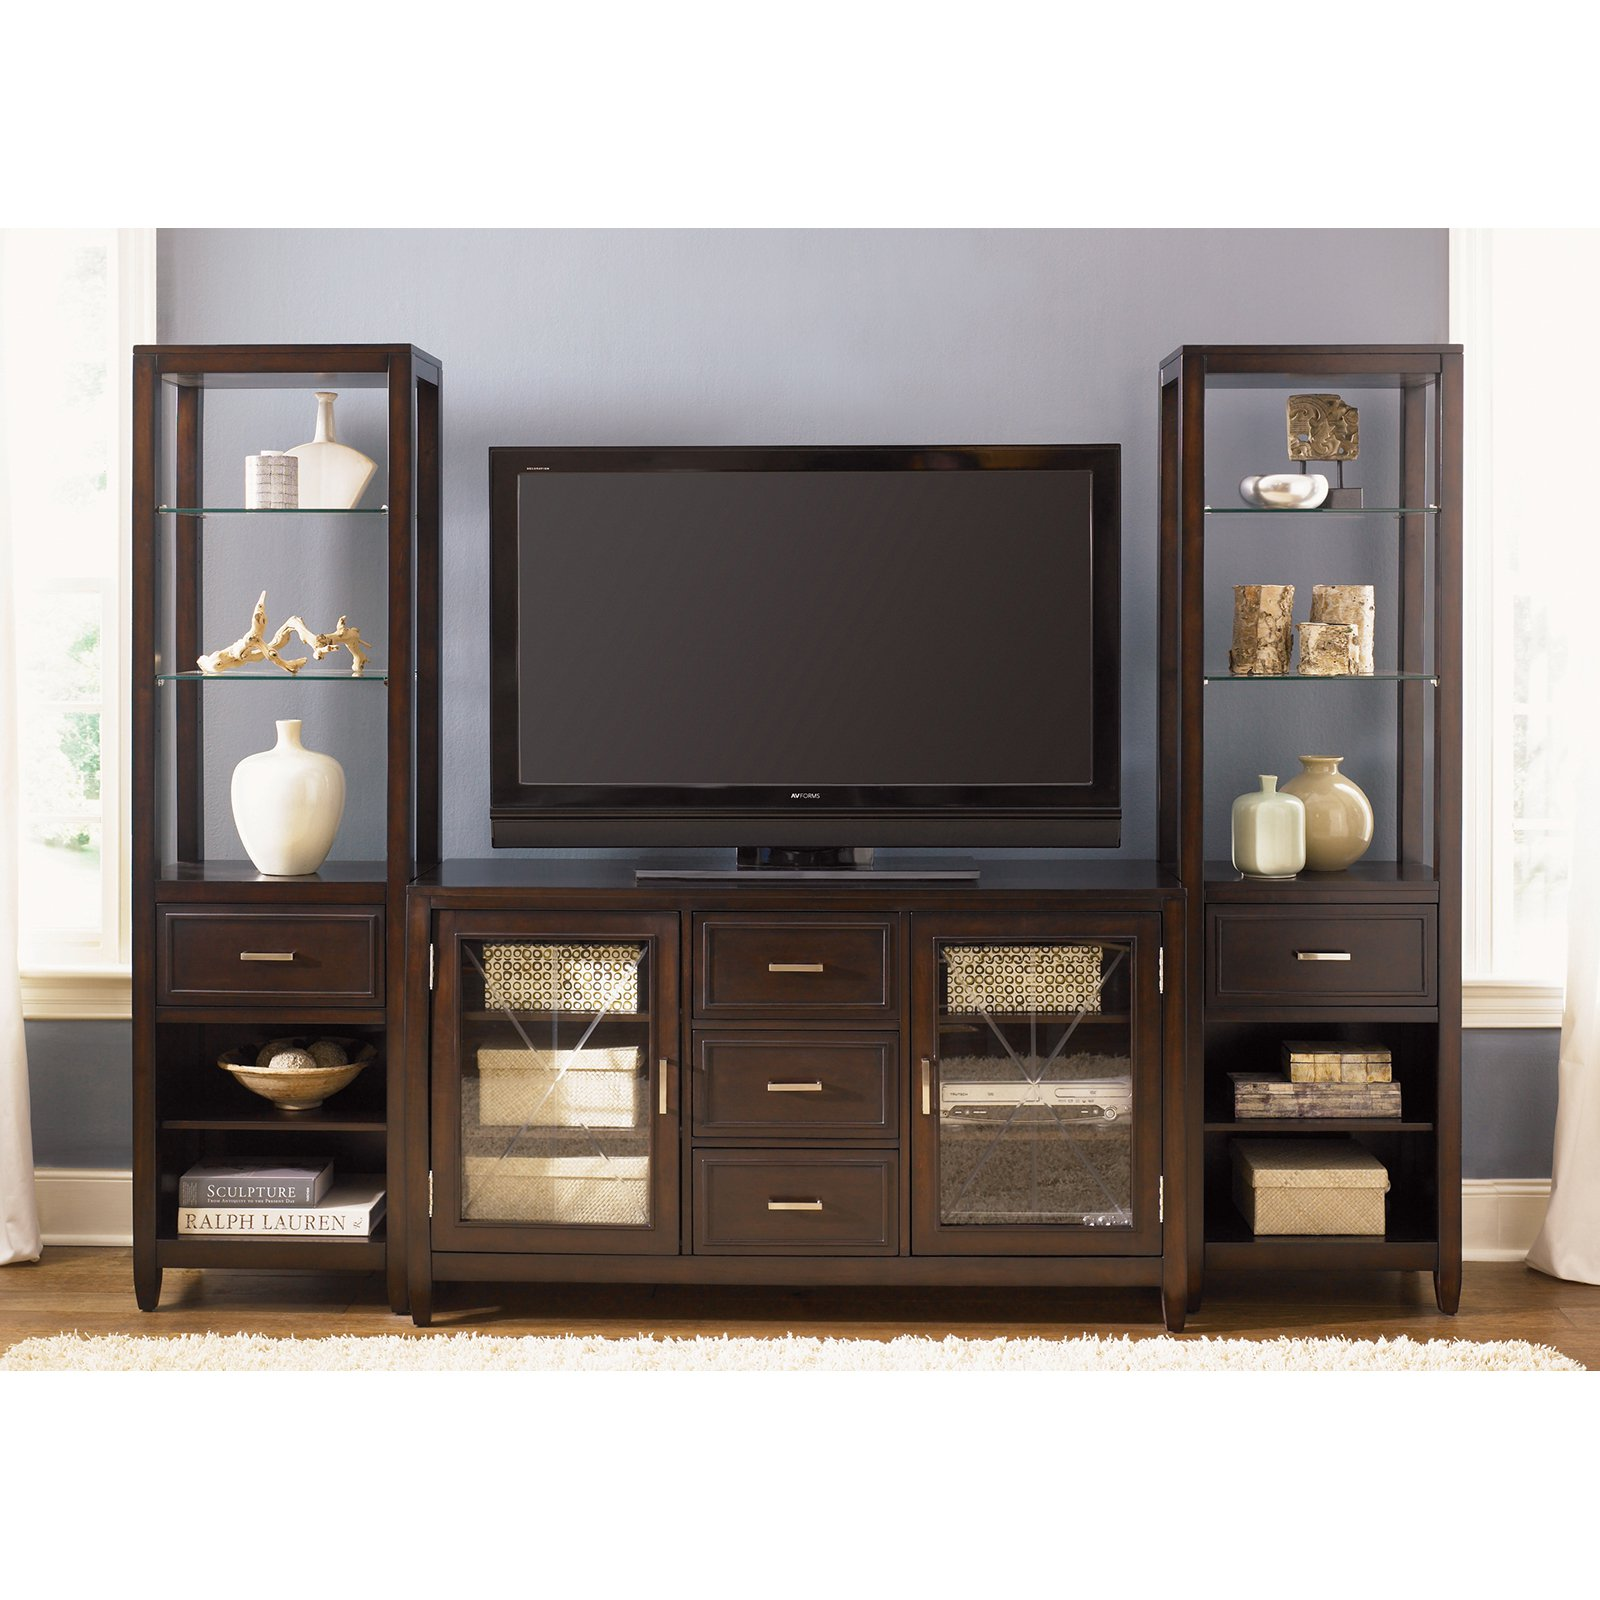 Caroline Entertainment Center with Piers - Espresso